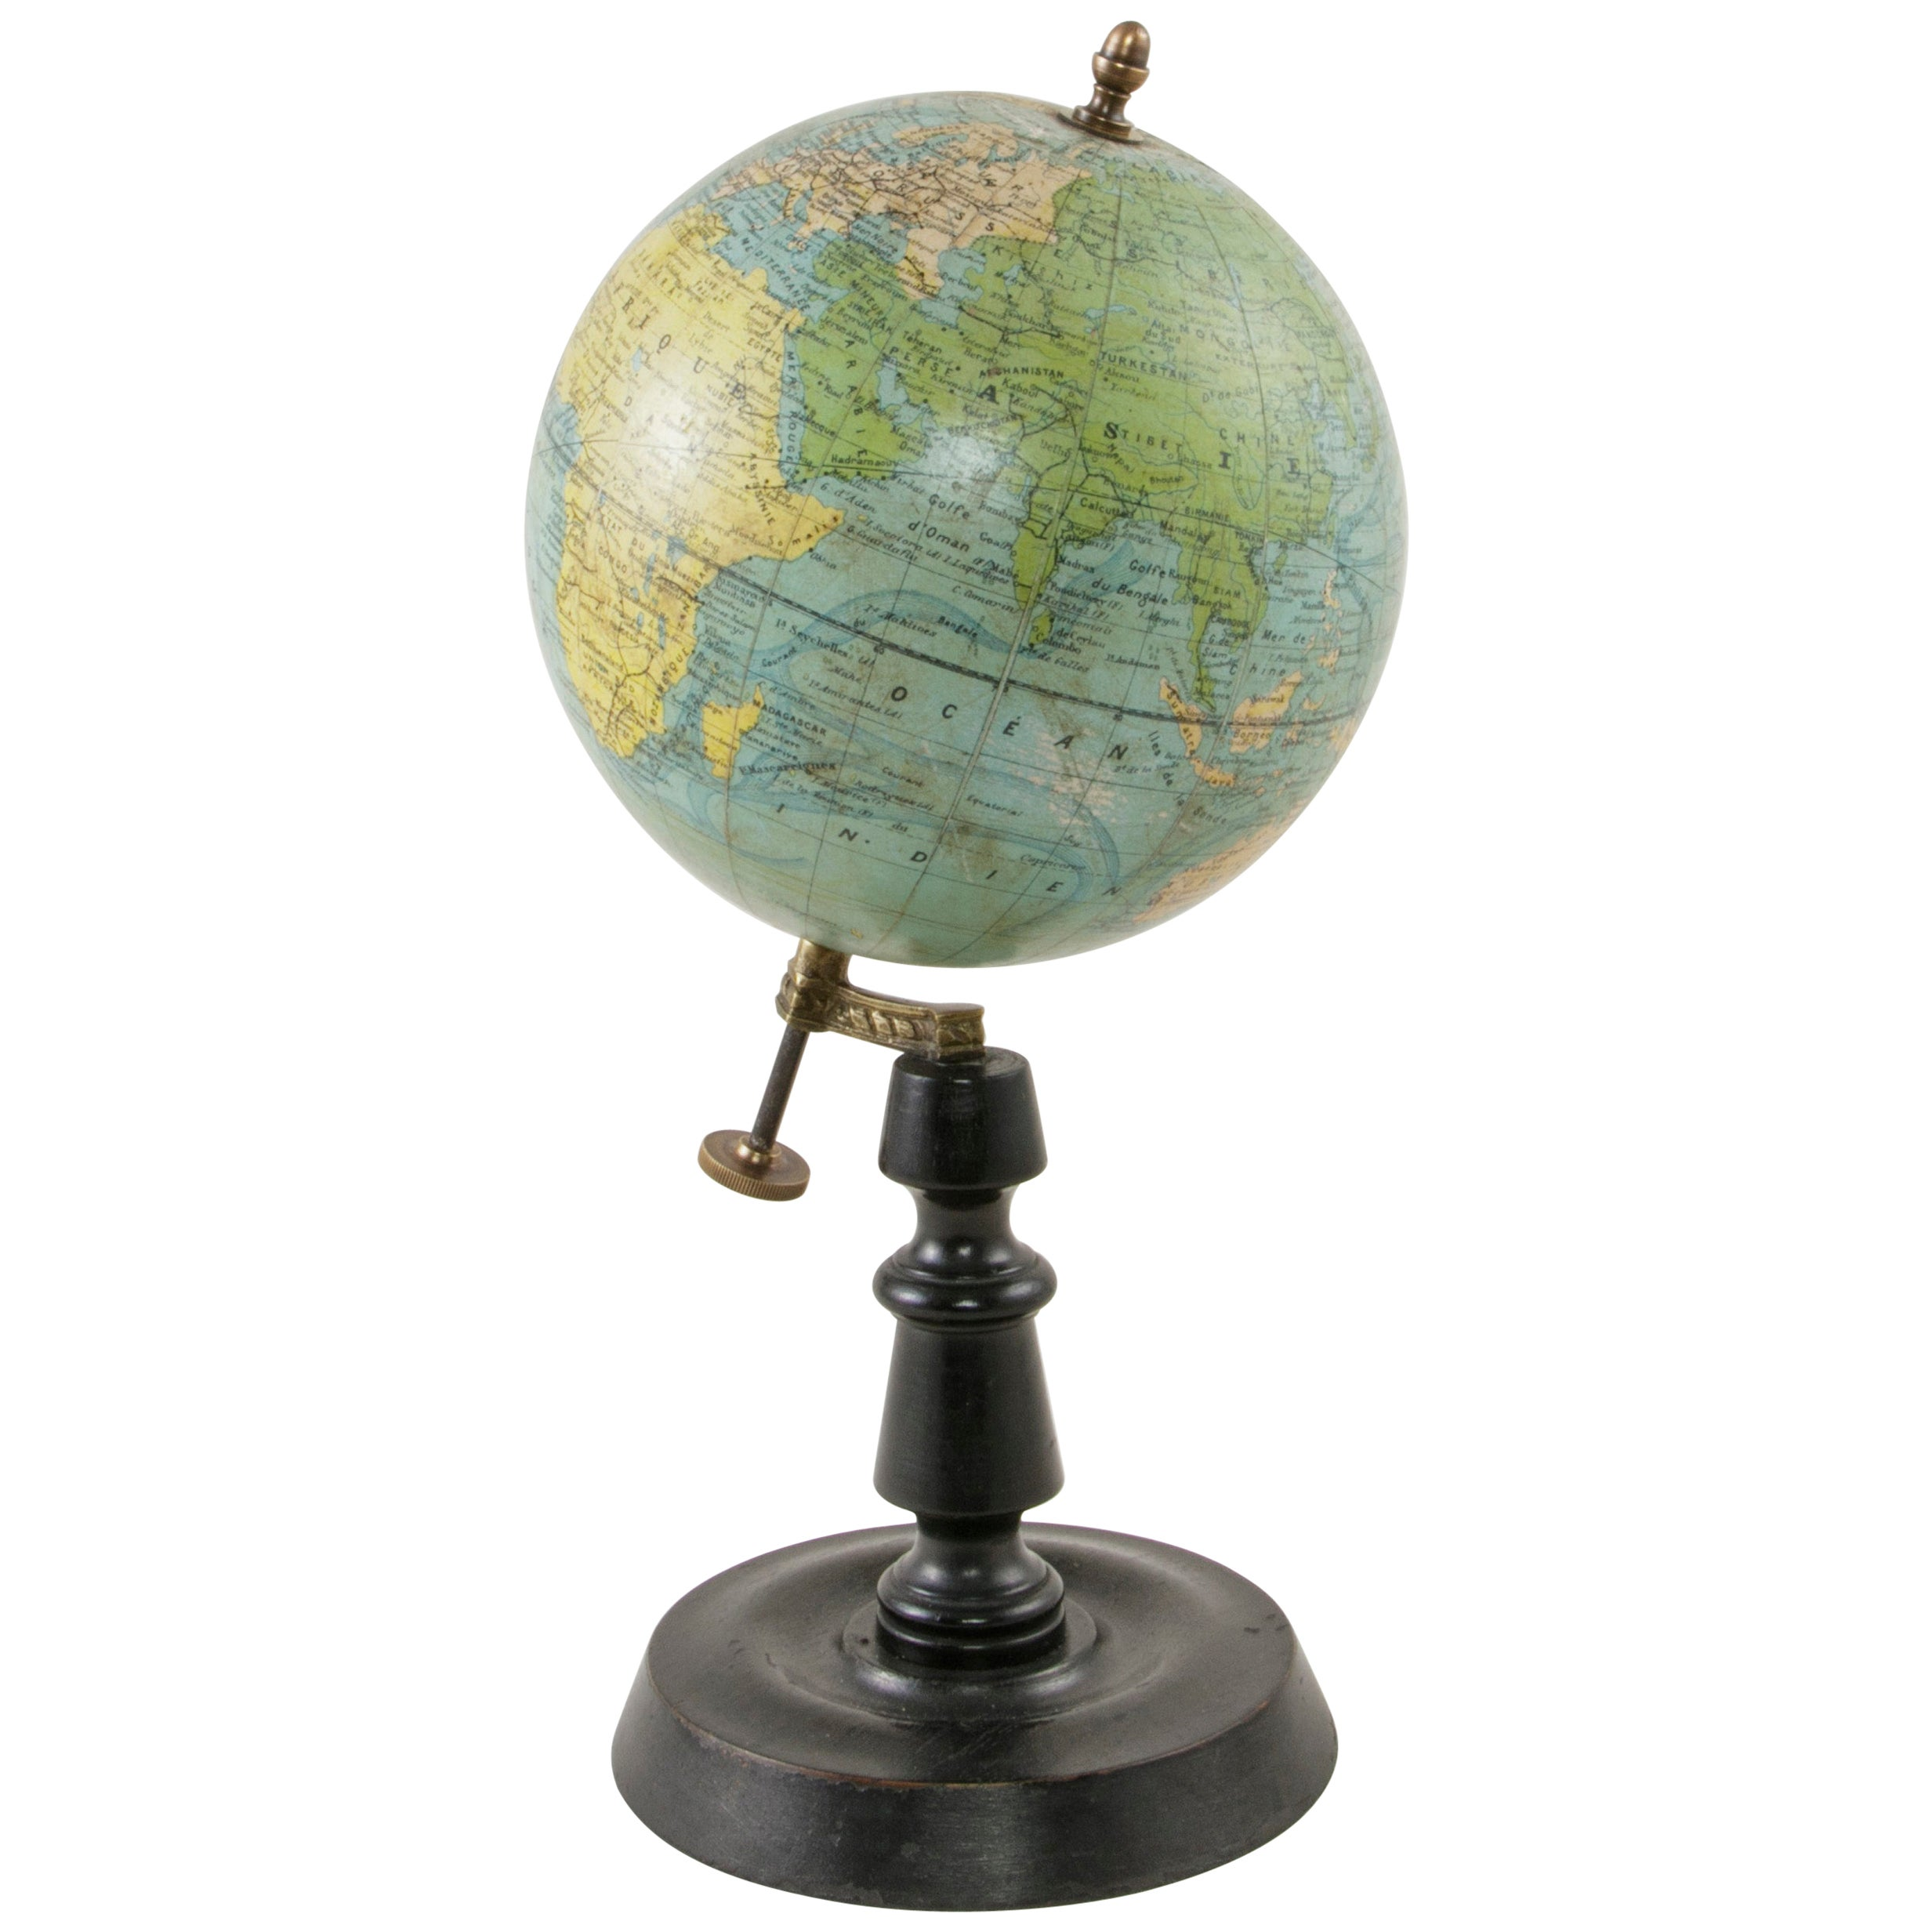 French Terrestrial Globe on Ebonized Wooden Base by Cartographer J. Forest